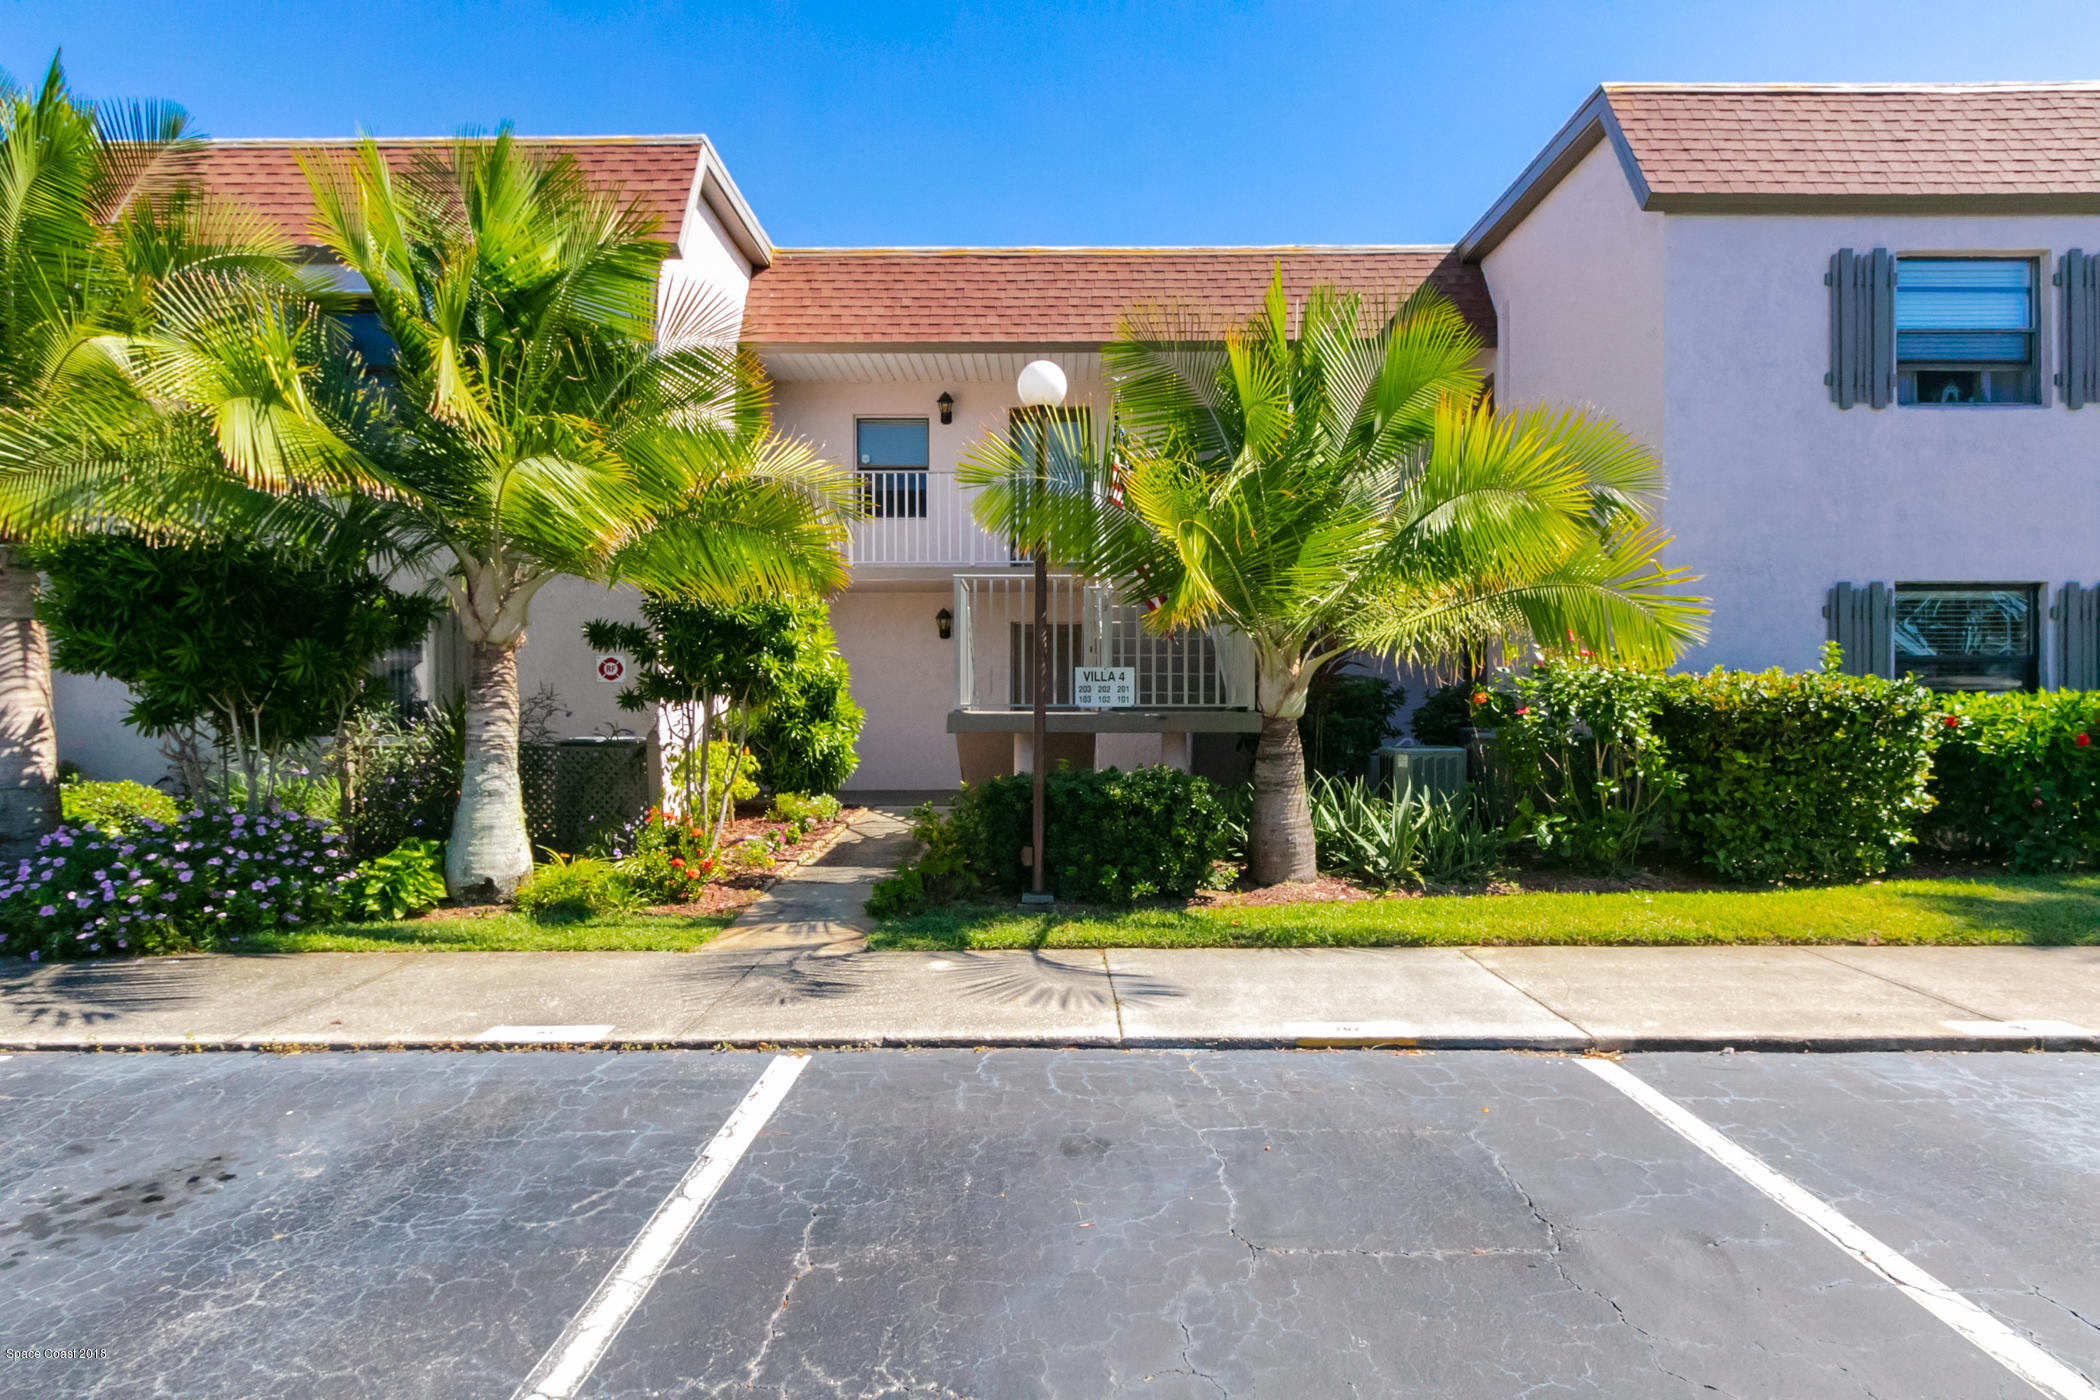 Single Family Home for Sale at 2727 N Wickham 2727 N Wickham Melbourne, Florida 32935 United States